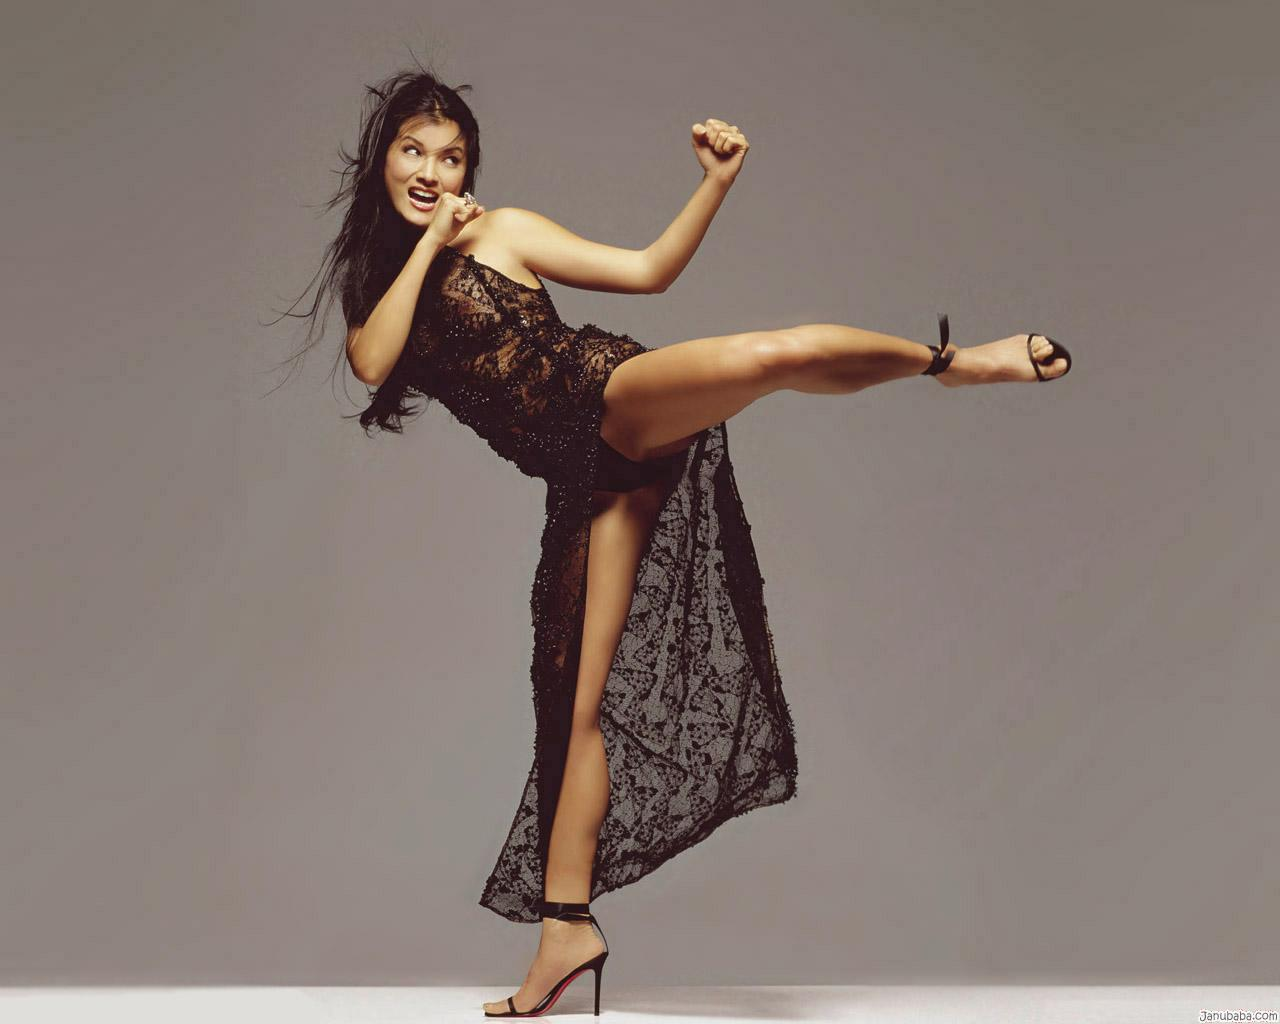 Kelly Hu with a weight of 55 kg and a feet size of 7.5 in favorite outfit & clothing style